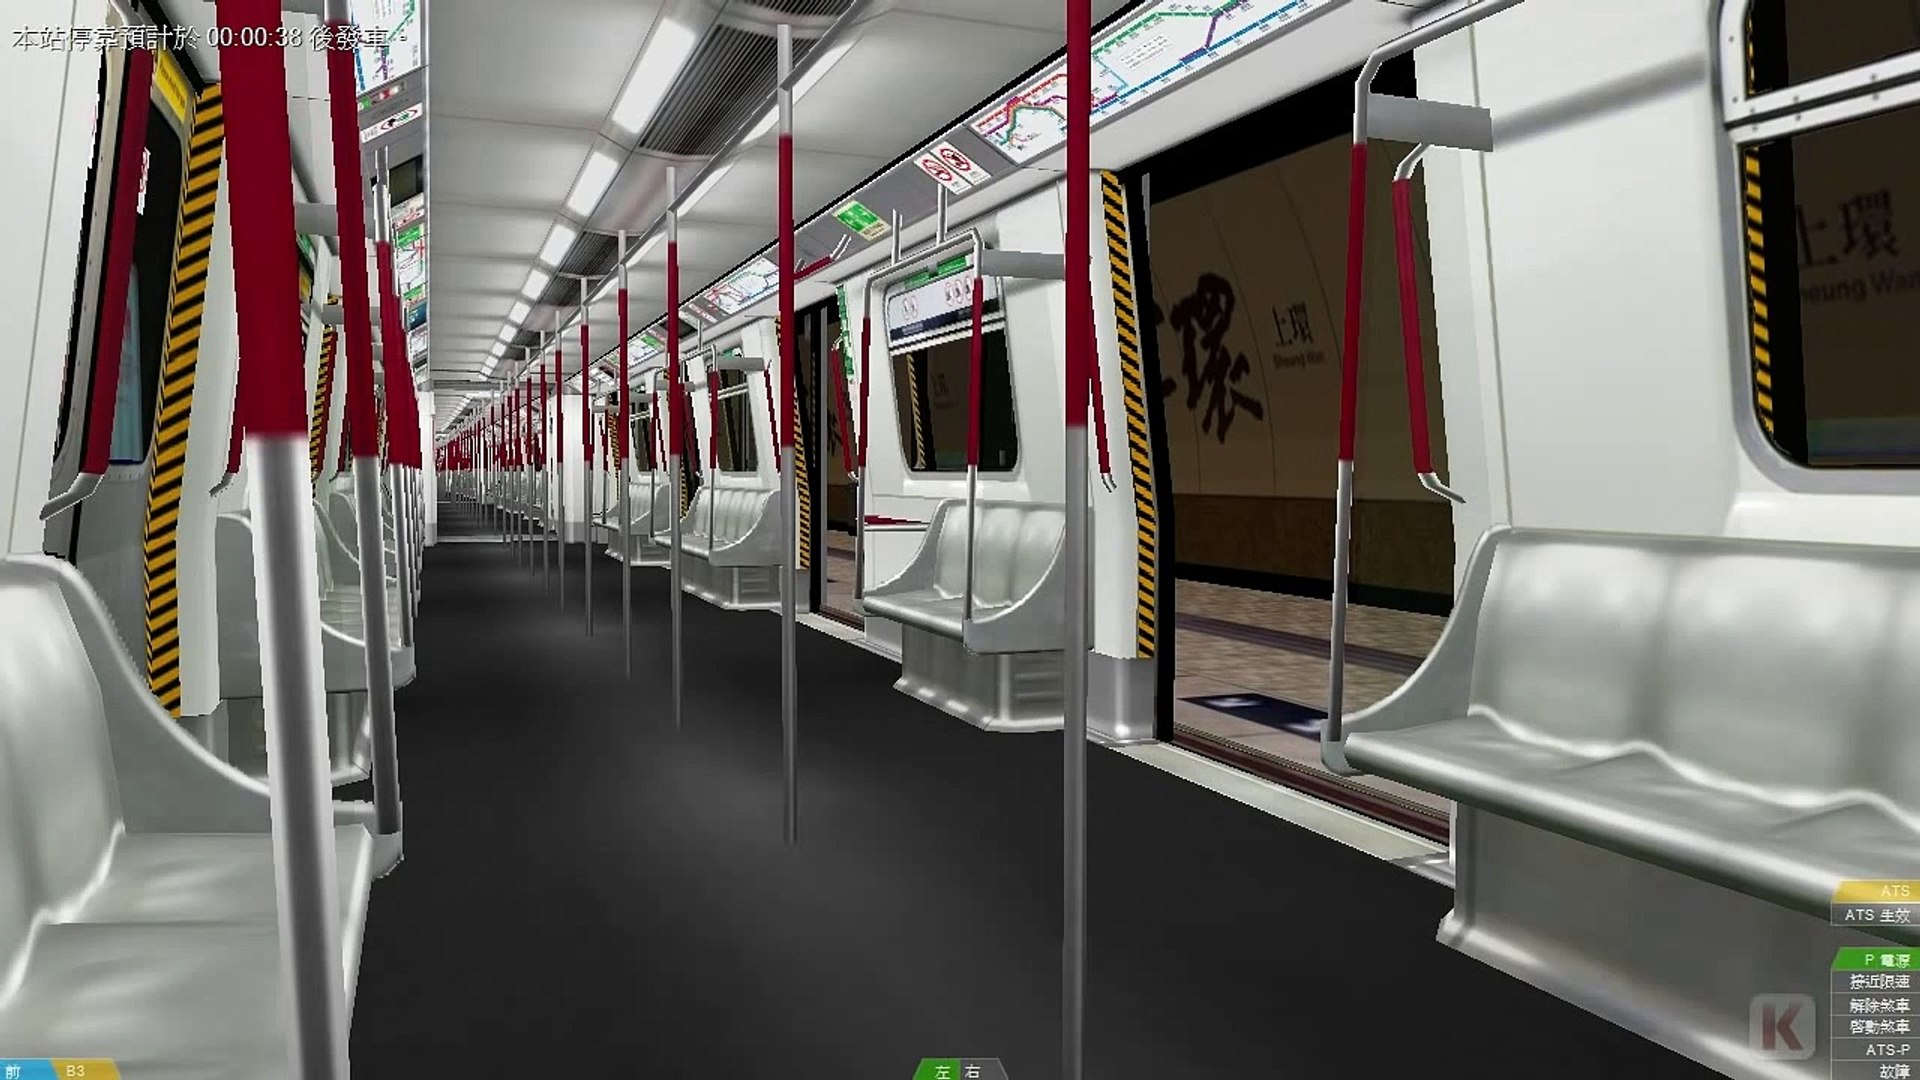 openBVE - MTR Island Line [ Sheung Wan to Central ]